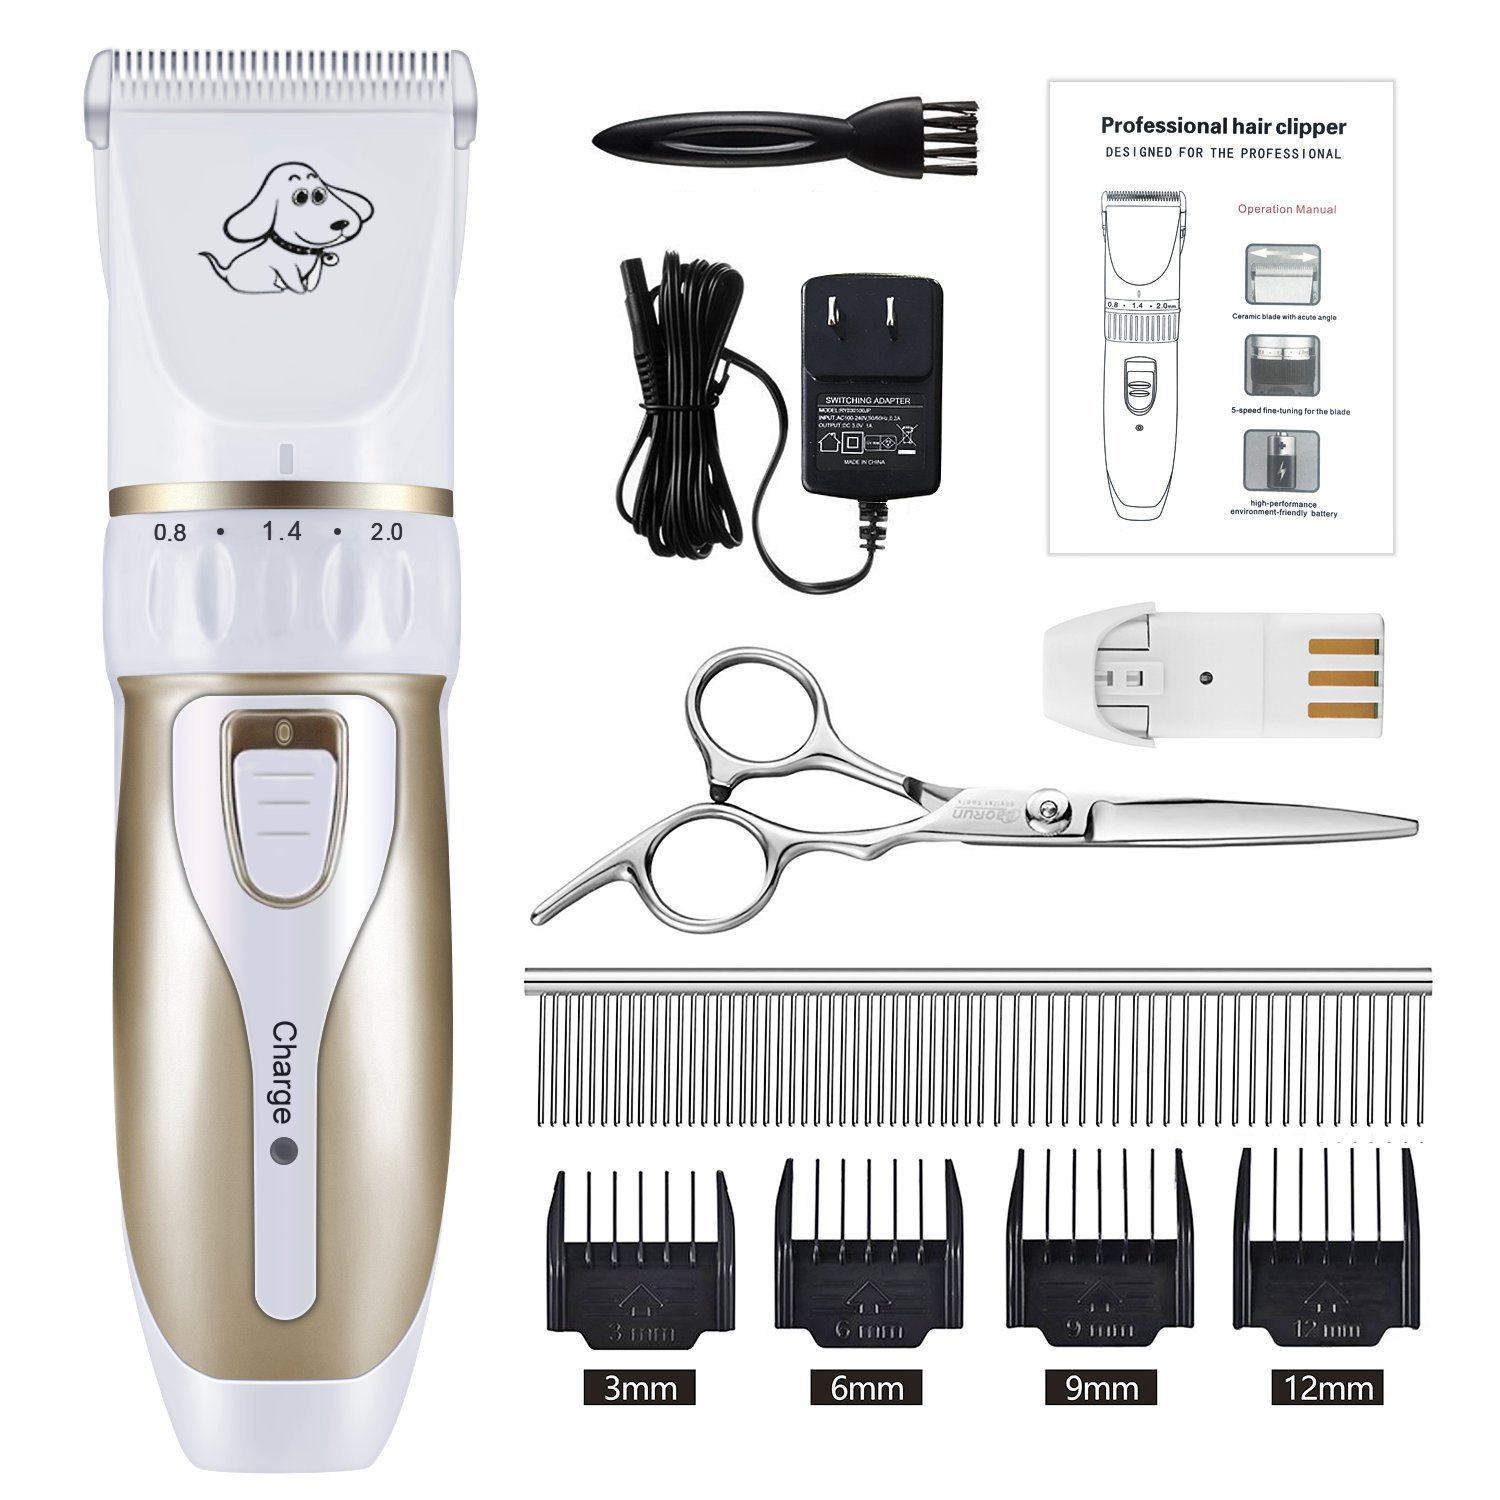 IREENUO Professional Electric Pet Grooming Clippers, Rechargeable Cordless Pet Hair Shaver, Grooming Trimmer Kit Low Noise Low Vibration 4 Comb Guides Cleaning Brush